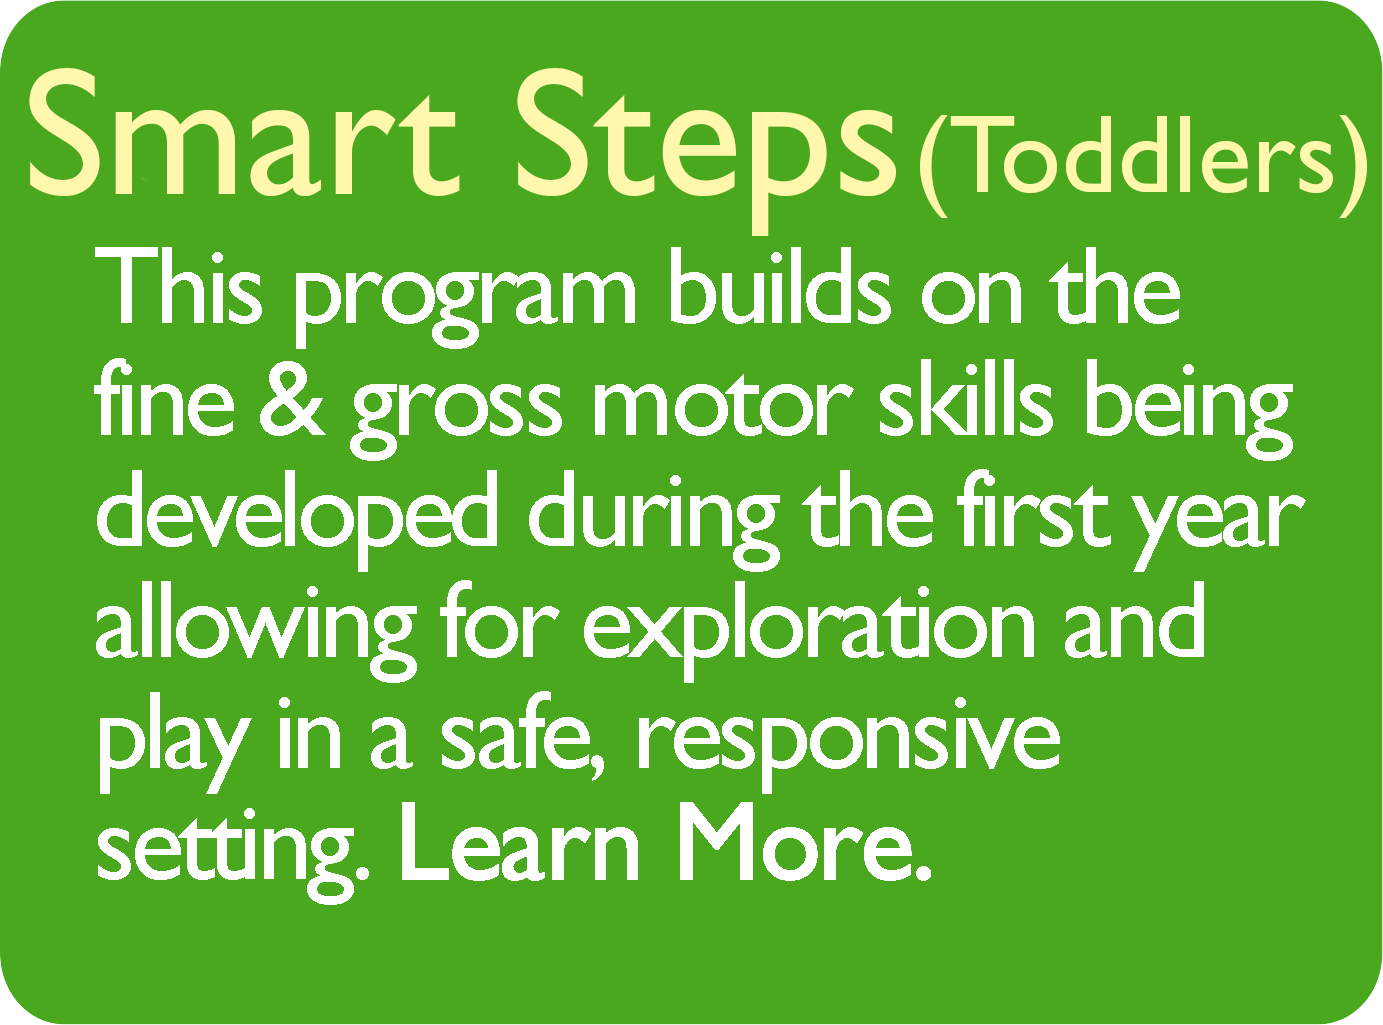 Smart Steps (Toddlers) This program builds on the fine & gross motor skills being developed during the first year allowing for exploration and play in a safe, responsive settings. Learn More.